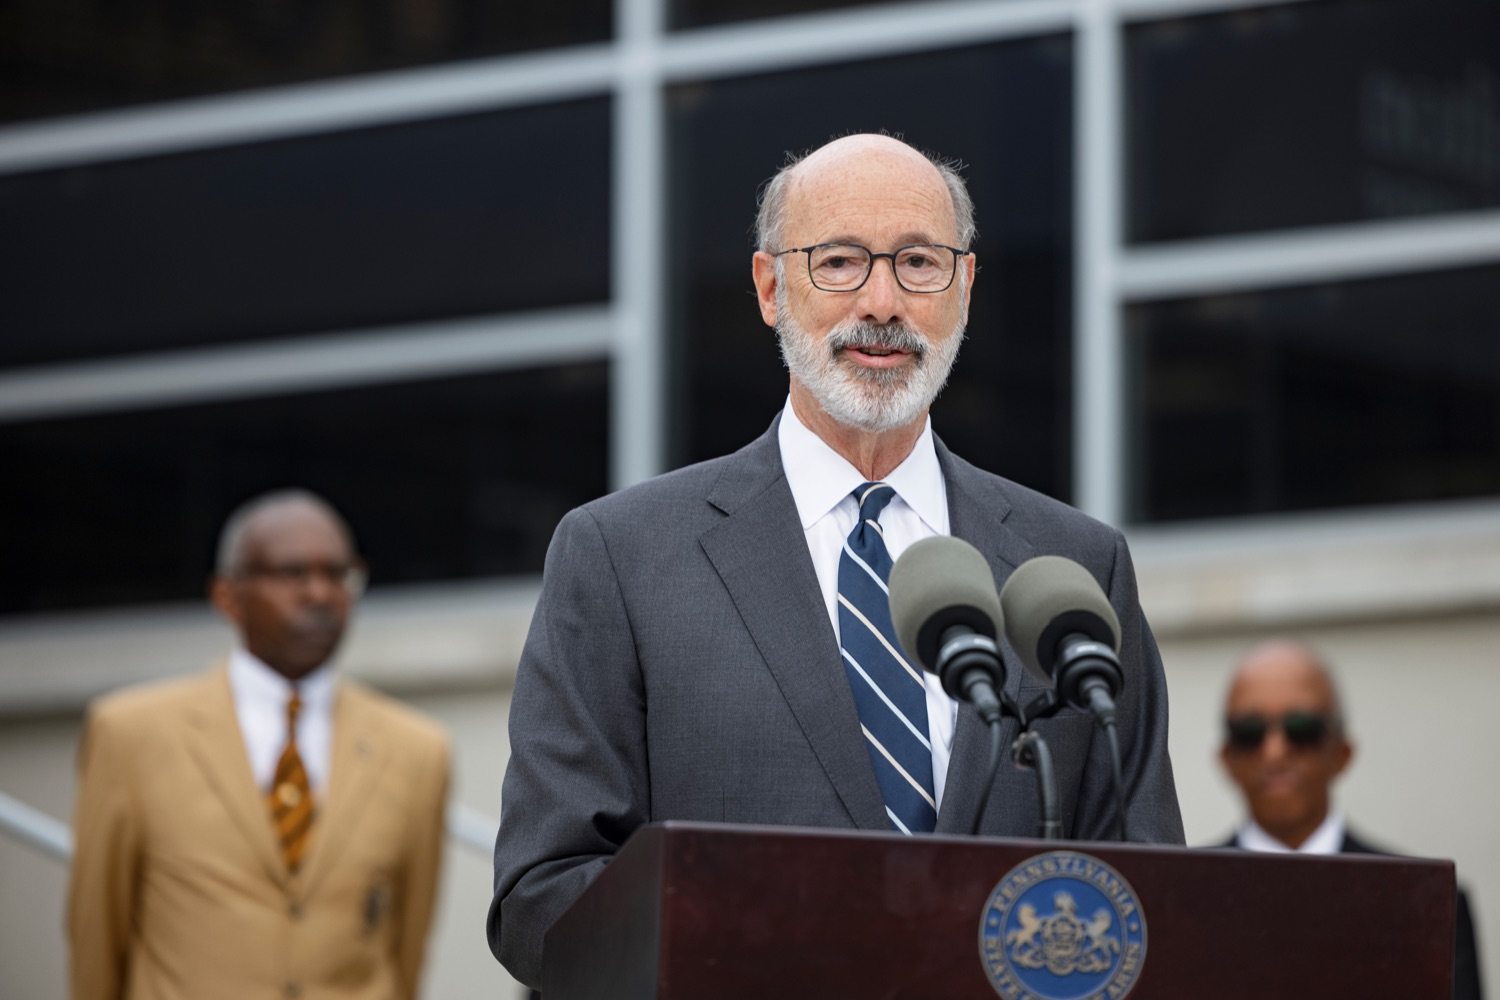 """<a href=""""https://filesource.wostreaming.net/commonwealthofpa/photo/20119_GOV_Vaccines_NK_005.jpg"""" target=""""_blank"""">⇣Download Photo<br></a>PA Governor Tom Wolf speaks during a press conference, which encouraged eligible Pennsylvanians who are not yet vaccinated to take advantage of their upcoming community COVID-19 vaccine clinic in partnership with the Zeta Theta Lambda Chapter of Alpha Phi Alpha fraternity, outside Hamilton Health Center in Harrisburg on Wednesday, October 6, 2021. The clinic will run on Saturday, October 9, COVID-19 vaccinations will be offered from 10am  2pm at Hamilton Health Center, 100 S. 17th St., Harrisburg, PA 17104."""